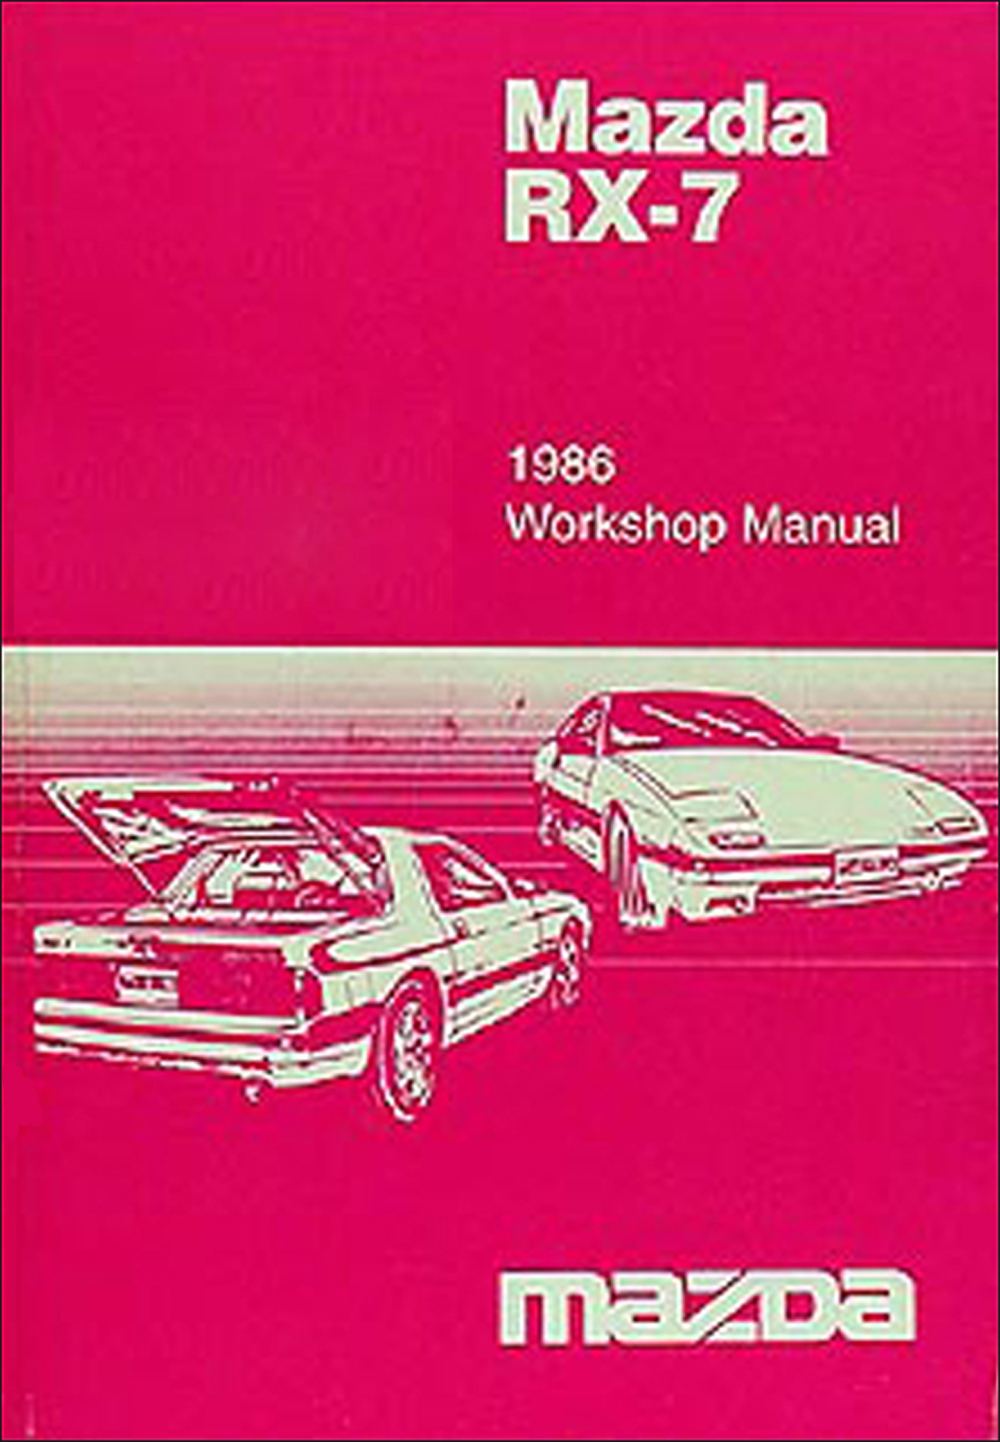 1986 Mazda RX-7 Repair Manual Original